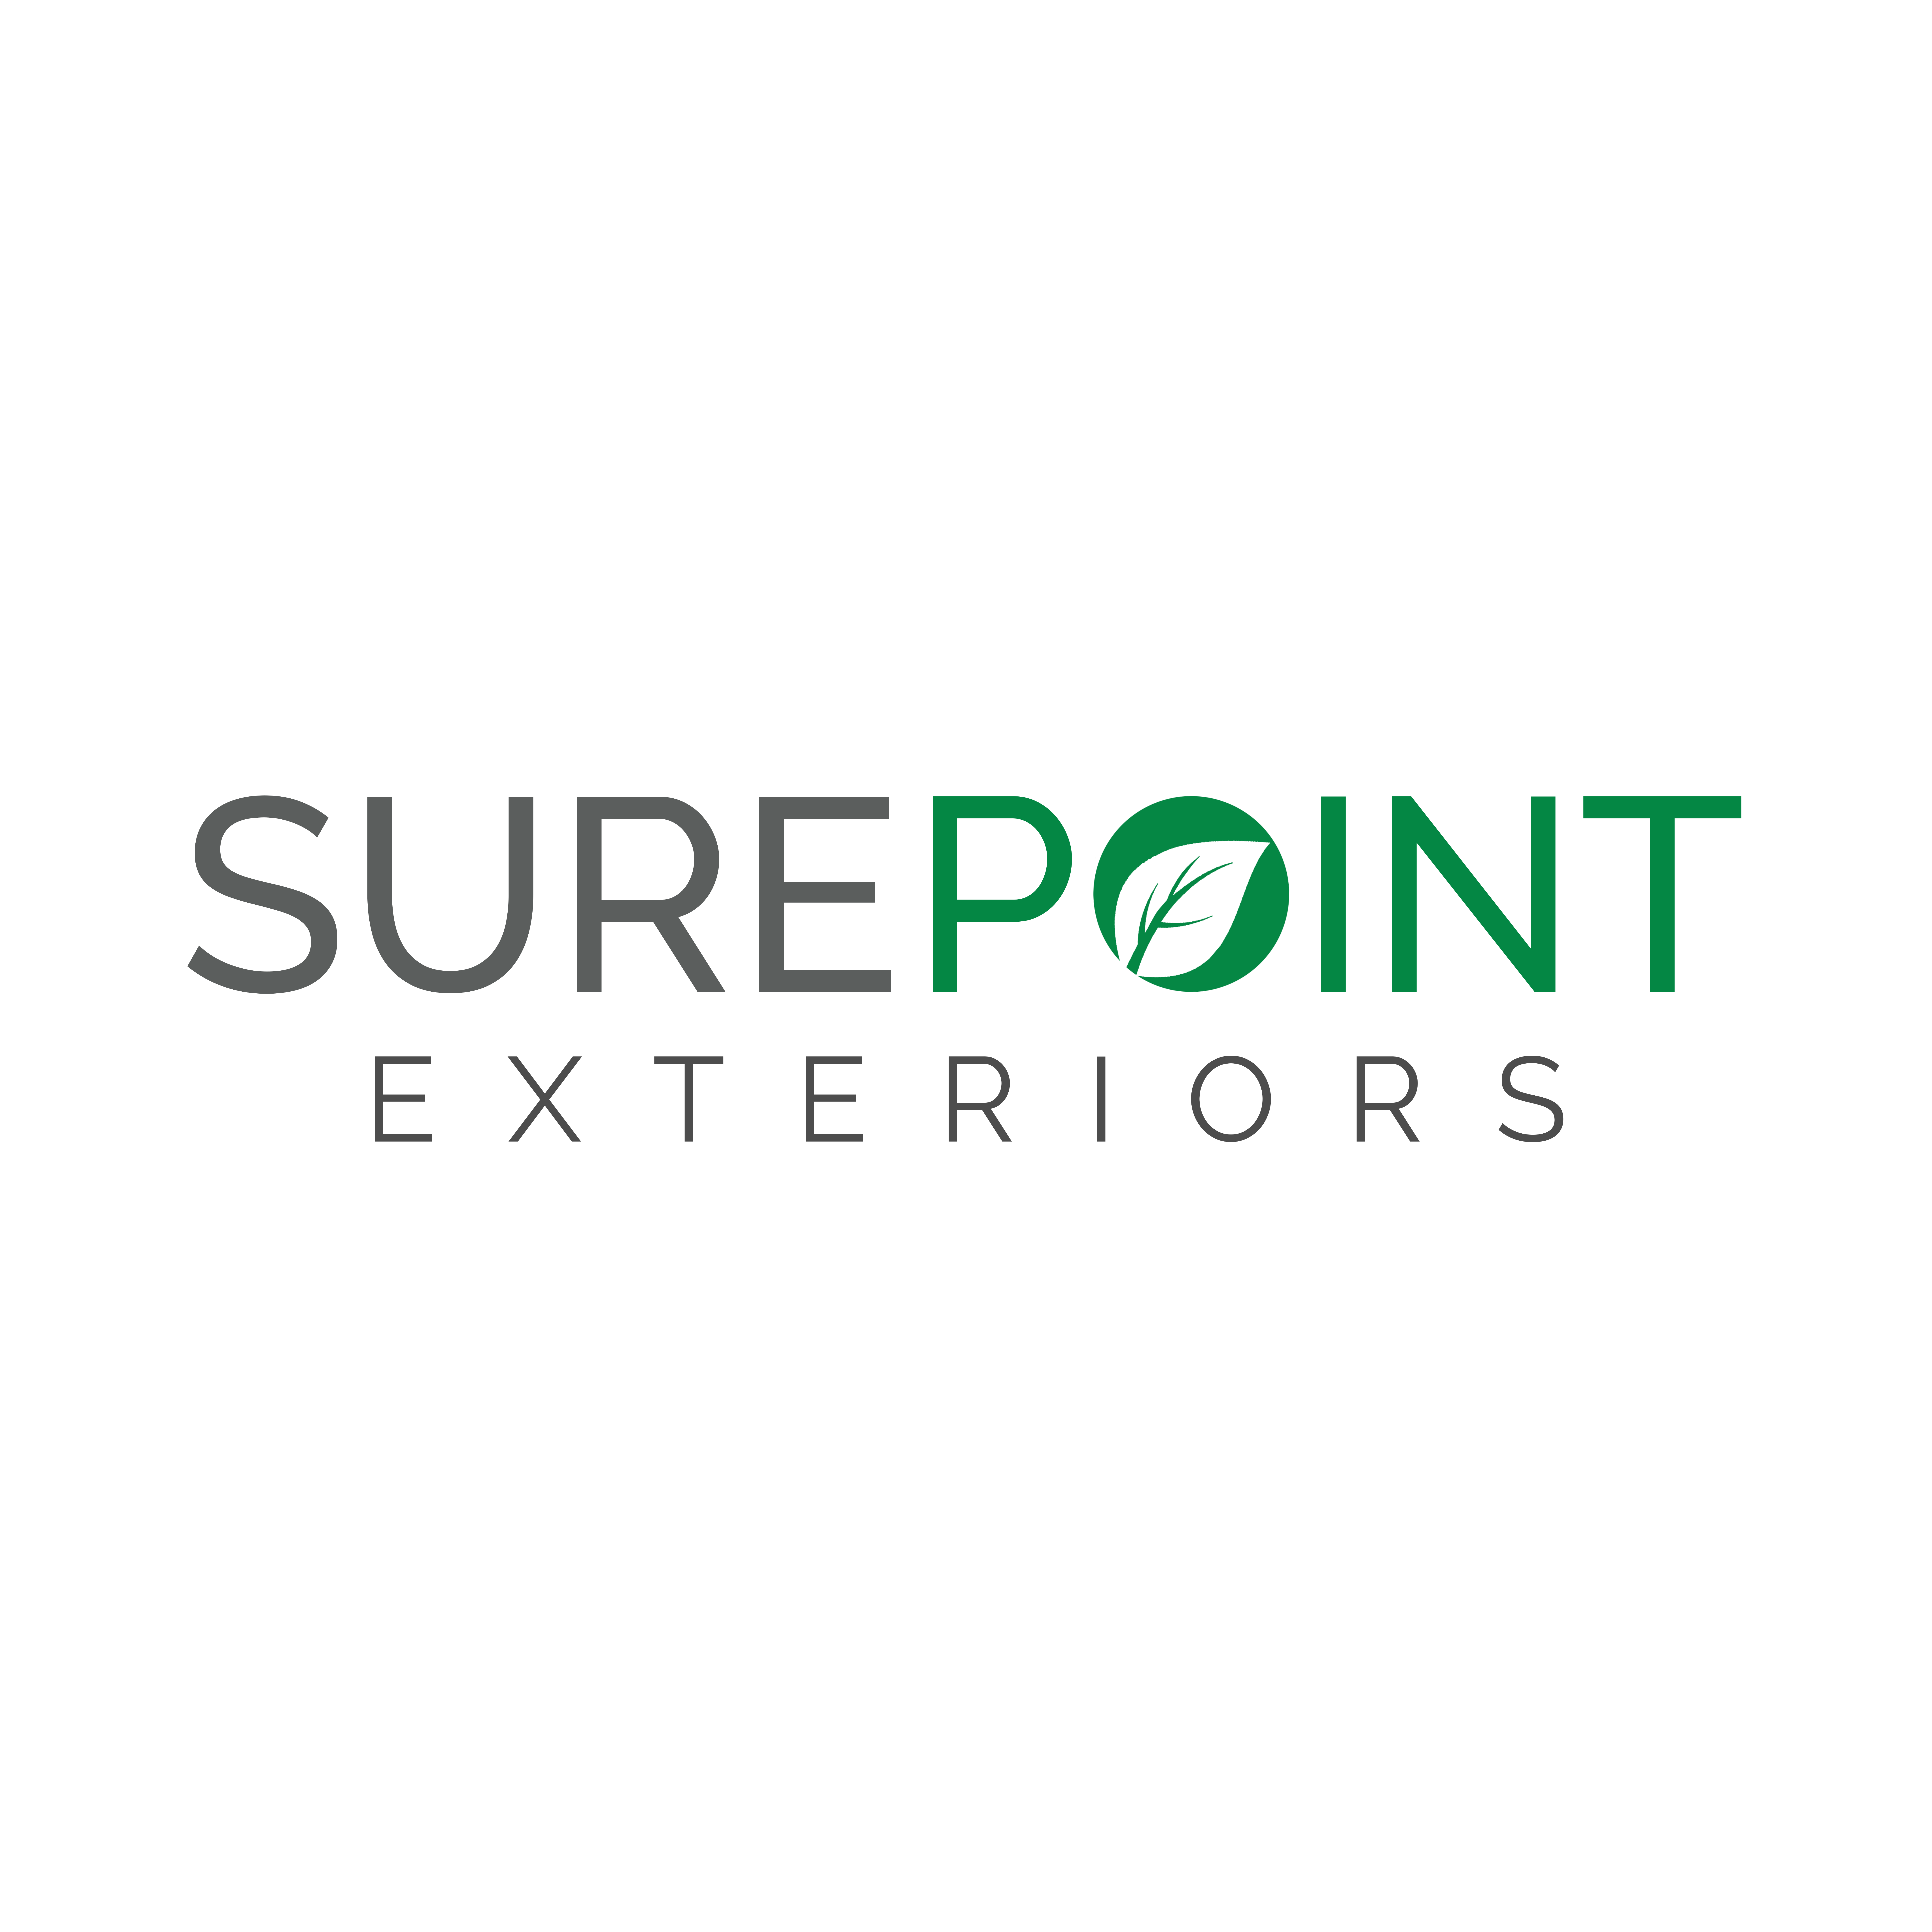 Sure Point Exteriors - Kansas City